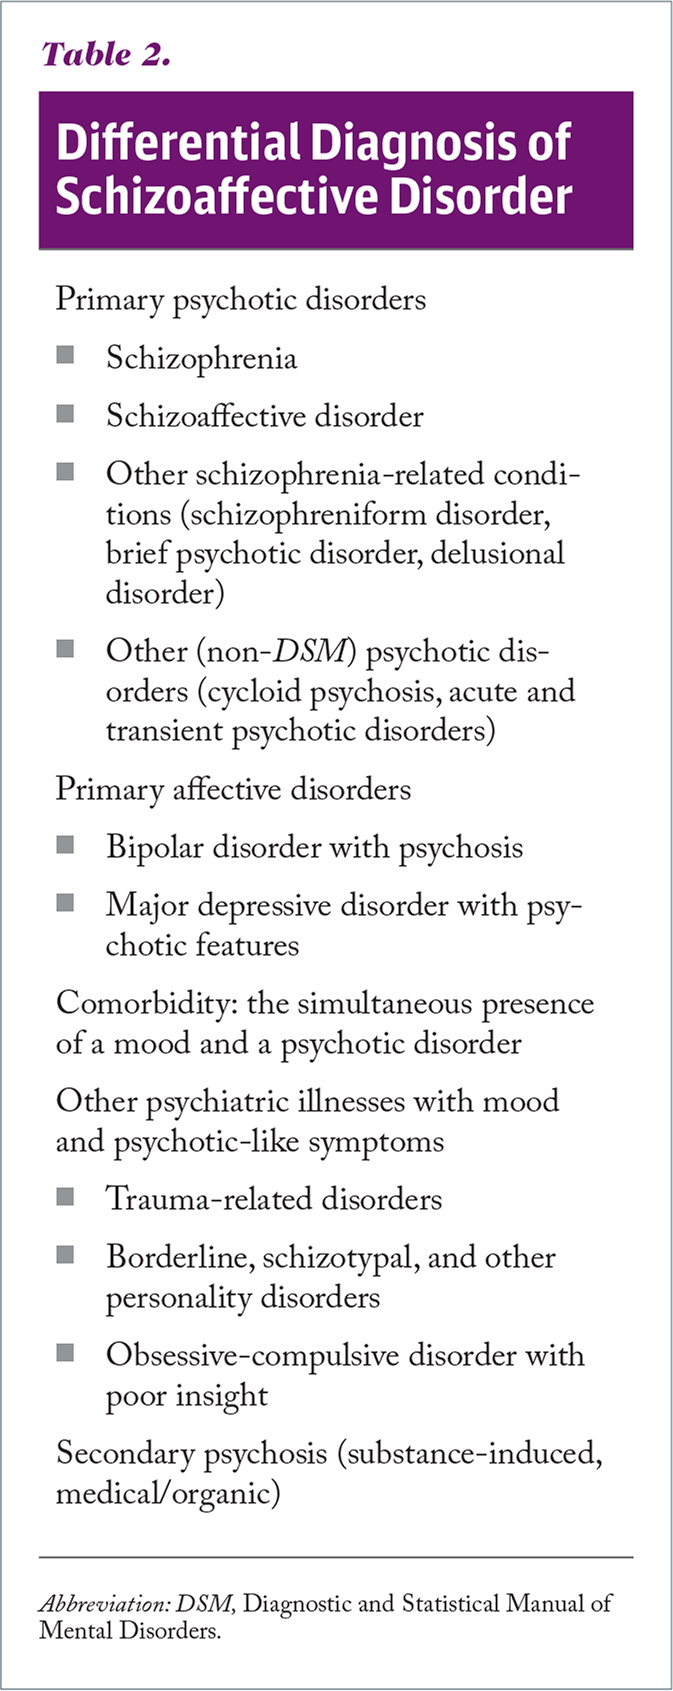 Differential Diagnosis of Schizoaffective Disorder